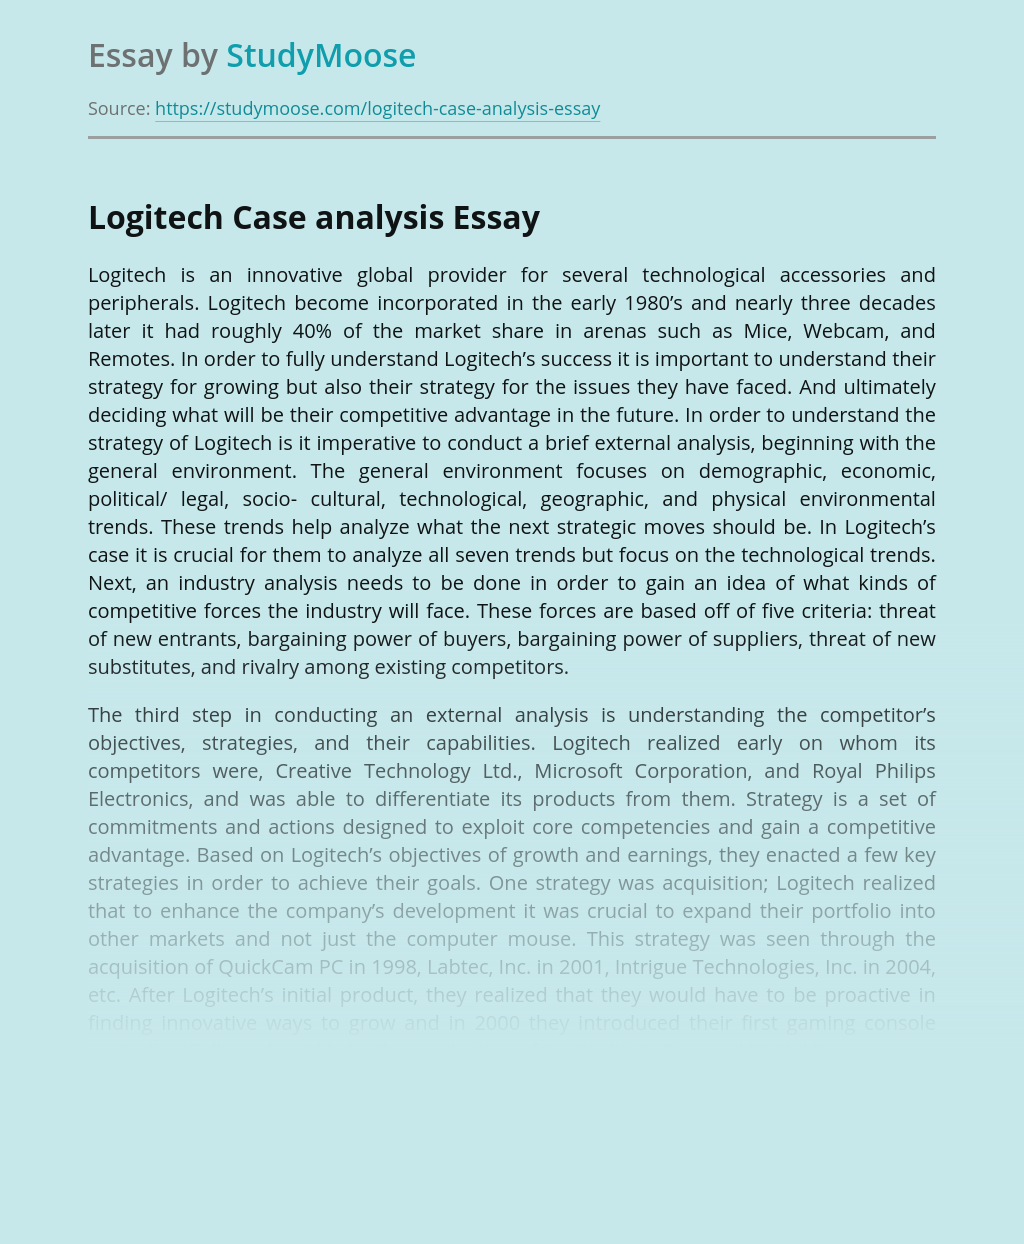 Logitech Case analysis